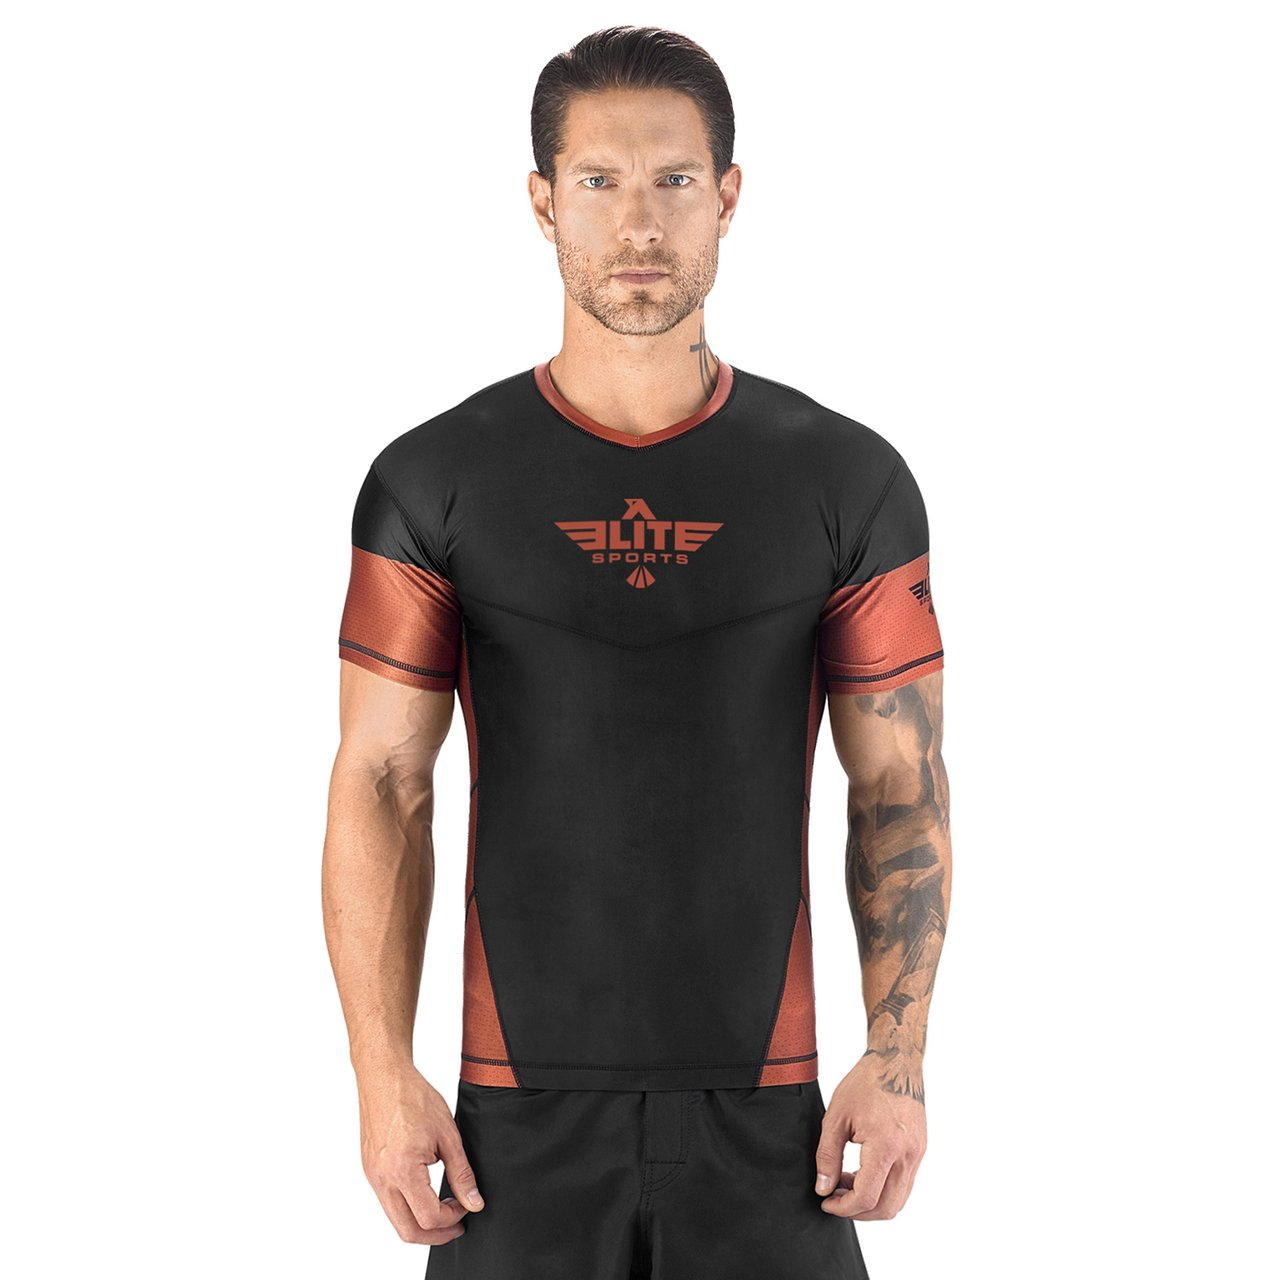 Load image into Gallery viewer, Elite Sports Honey Comb Sublimation Black/Brown Short Sleeve Judo Rash Guard